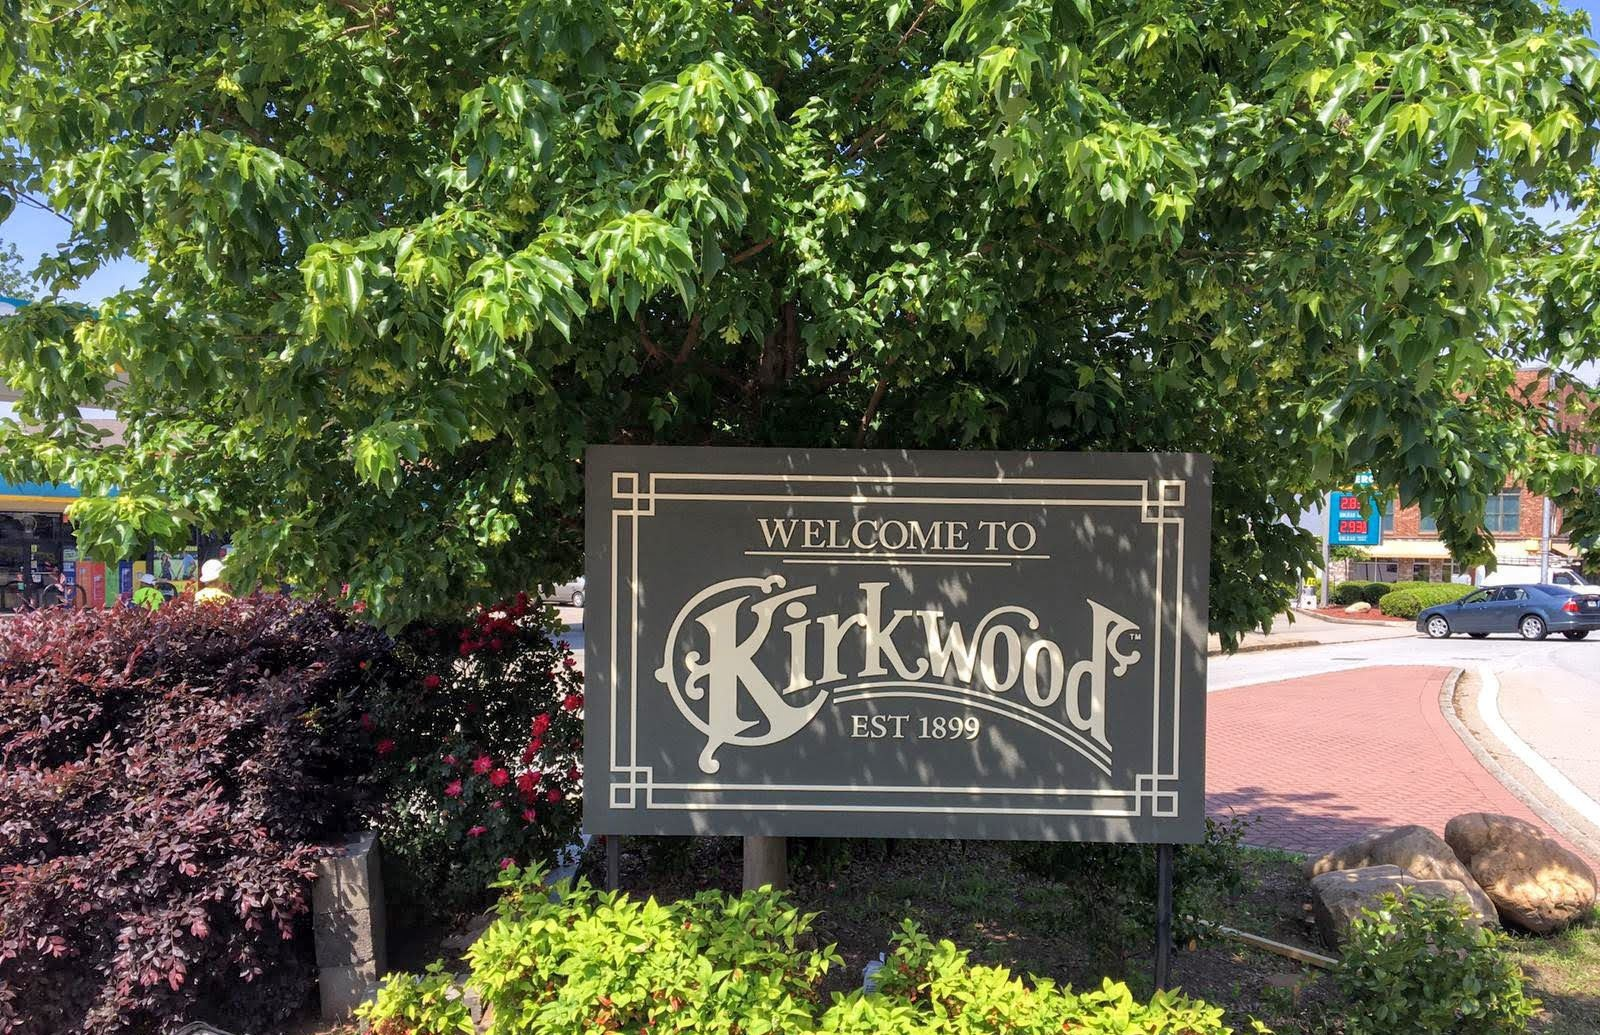 WelcometoKirkwood 2019